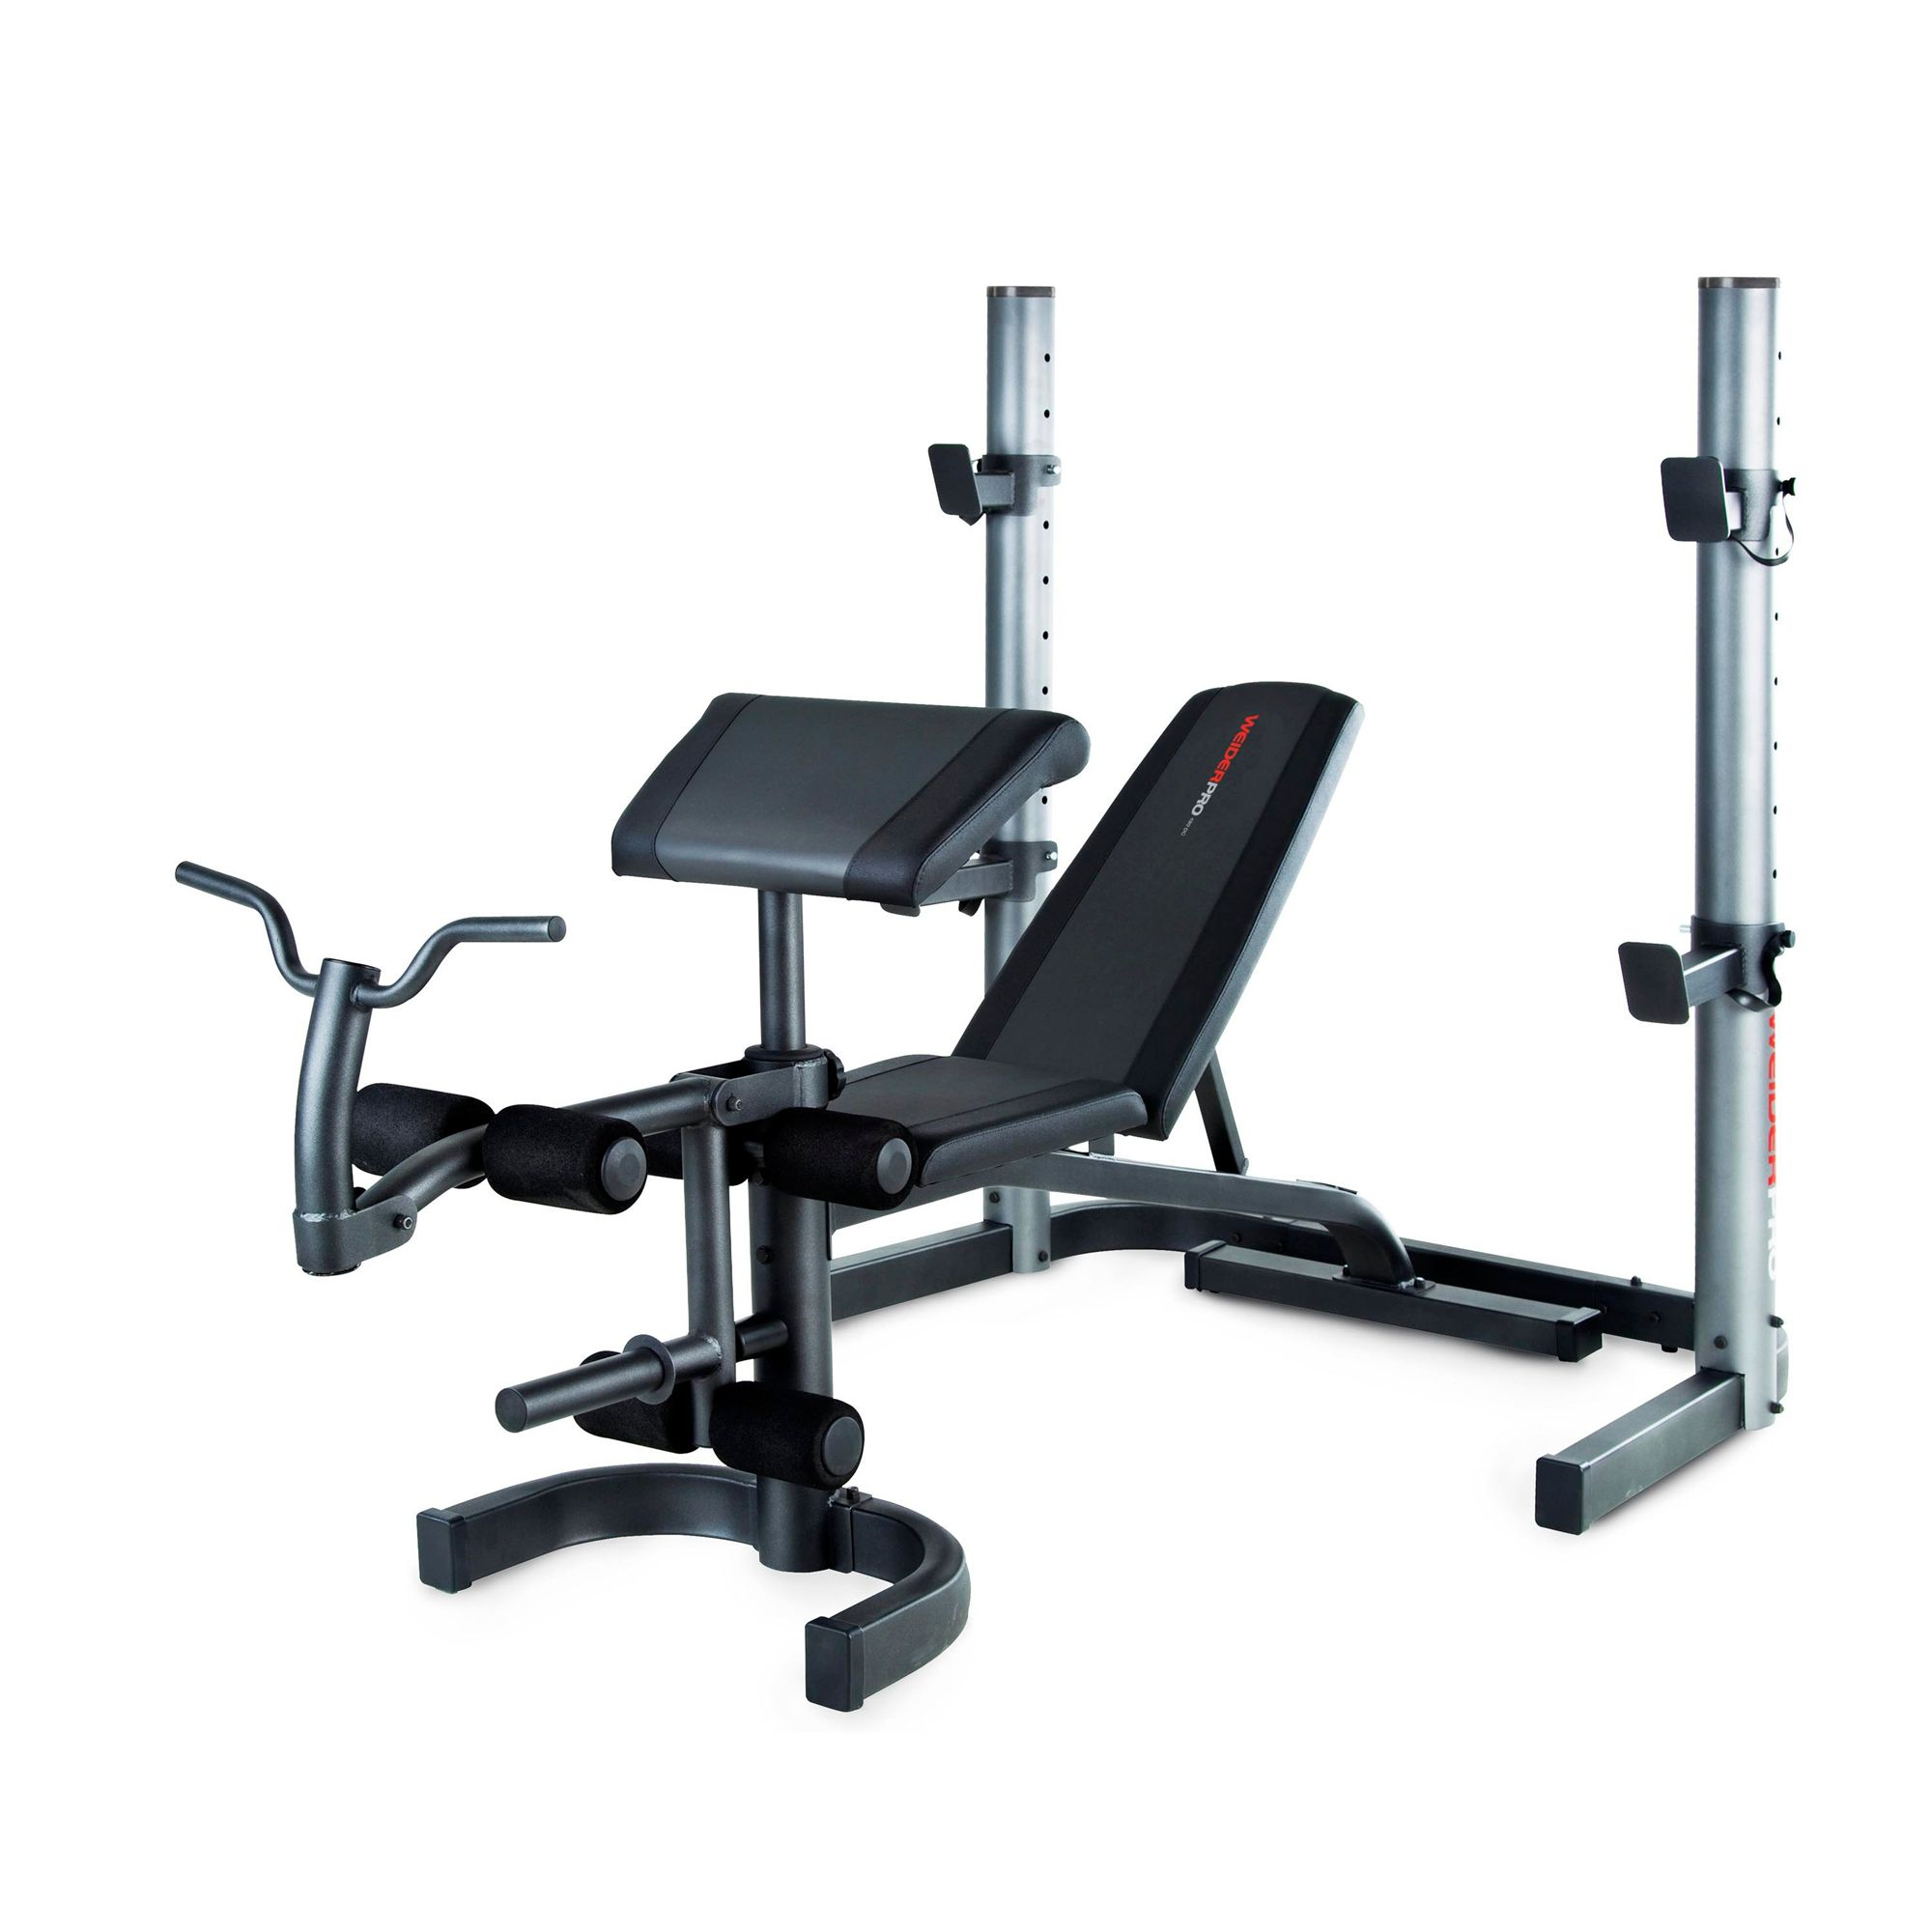 weider pro 490 dc weight bench. Black Bedroom Furniture Sets. Home Design Ideas